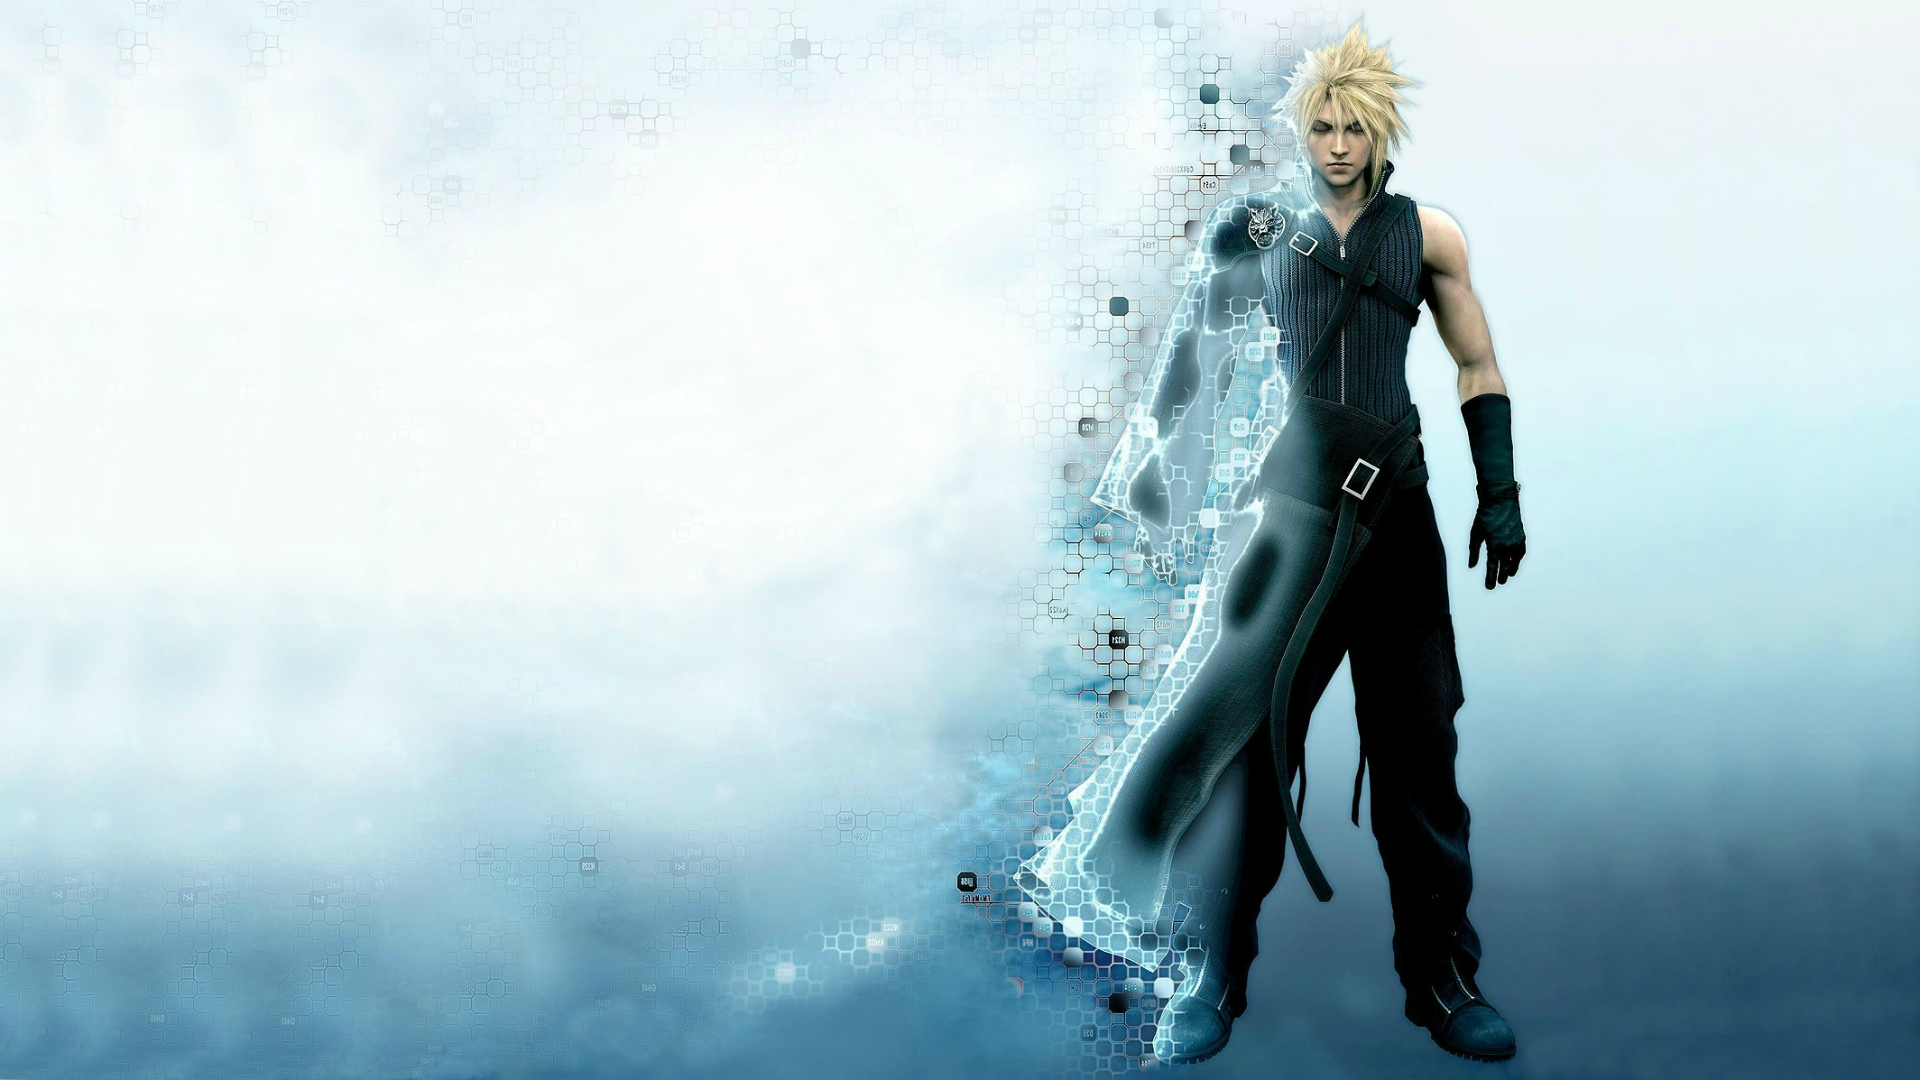 Final Fantasy 7 wallpaper Advent Children   Splendid 1920x1080